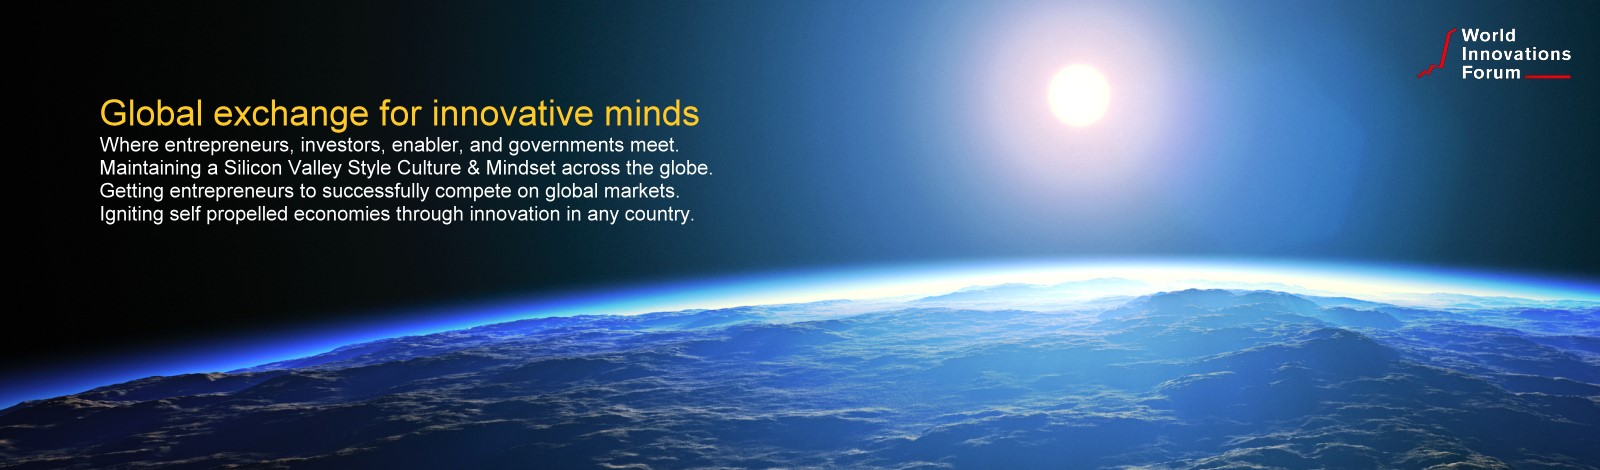 Global exchange for innovative minds Where entrepreneurs, investors, enabler, and governments meet. Maintaining a Silicon Valley Style Culture & Mindset across the globe. Getting entrepreneurs to successfully compete on global markets. Igniting self propelled economies through innovation in any country.